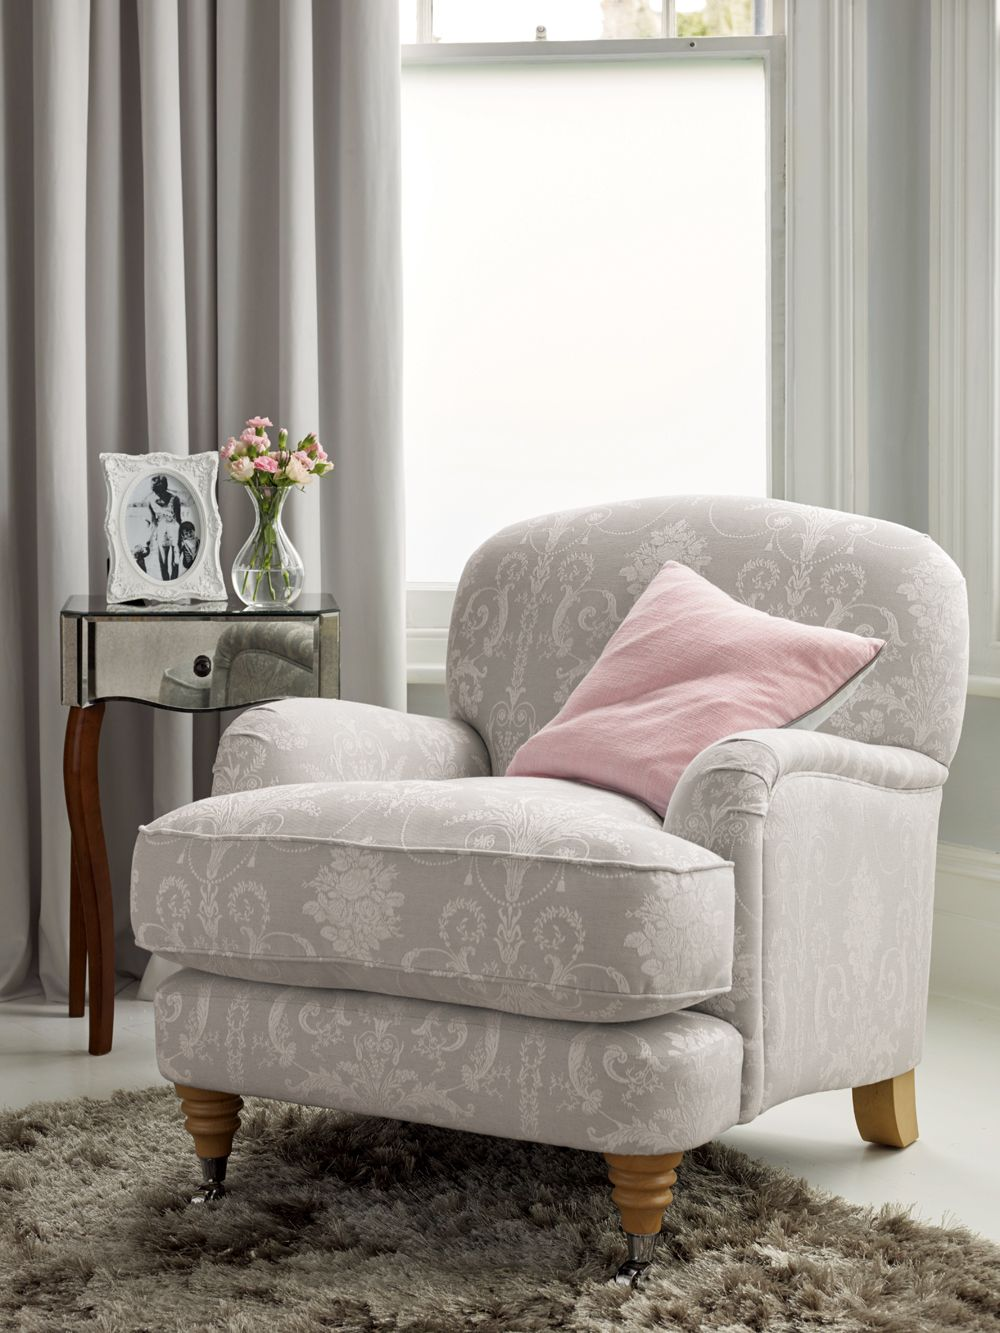 Laura Ashley Sofa Pink Laura Ashley Aw15 #interiors #silverserenity | Laura